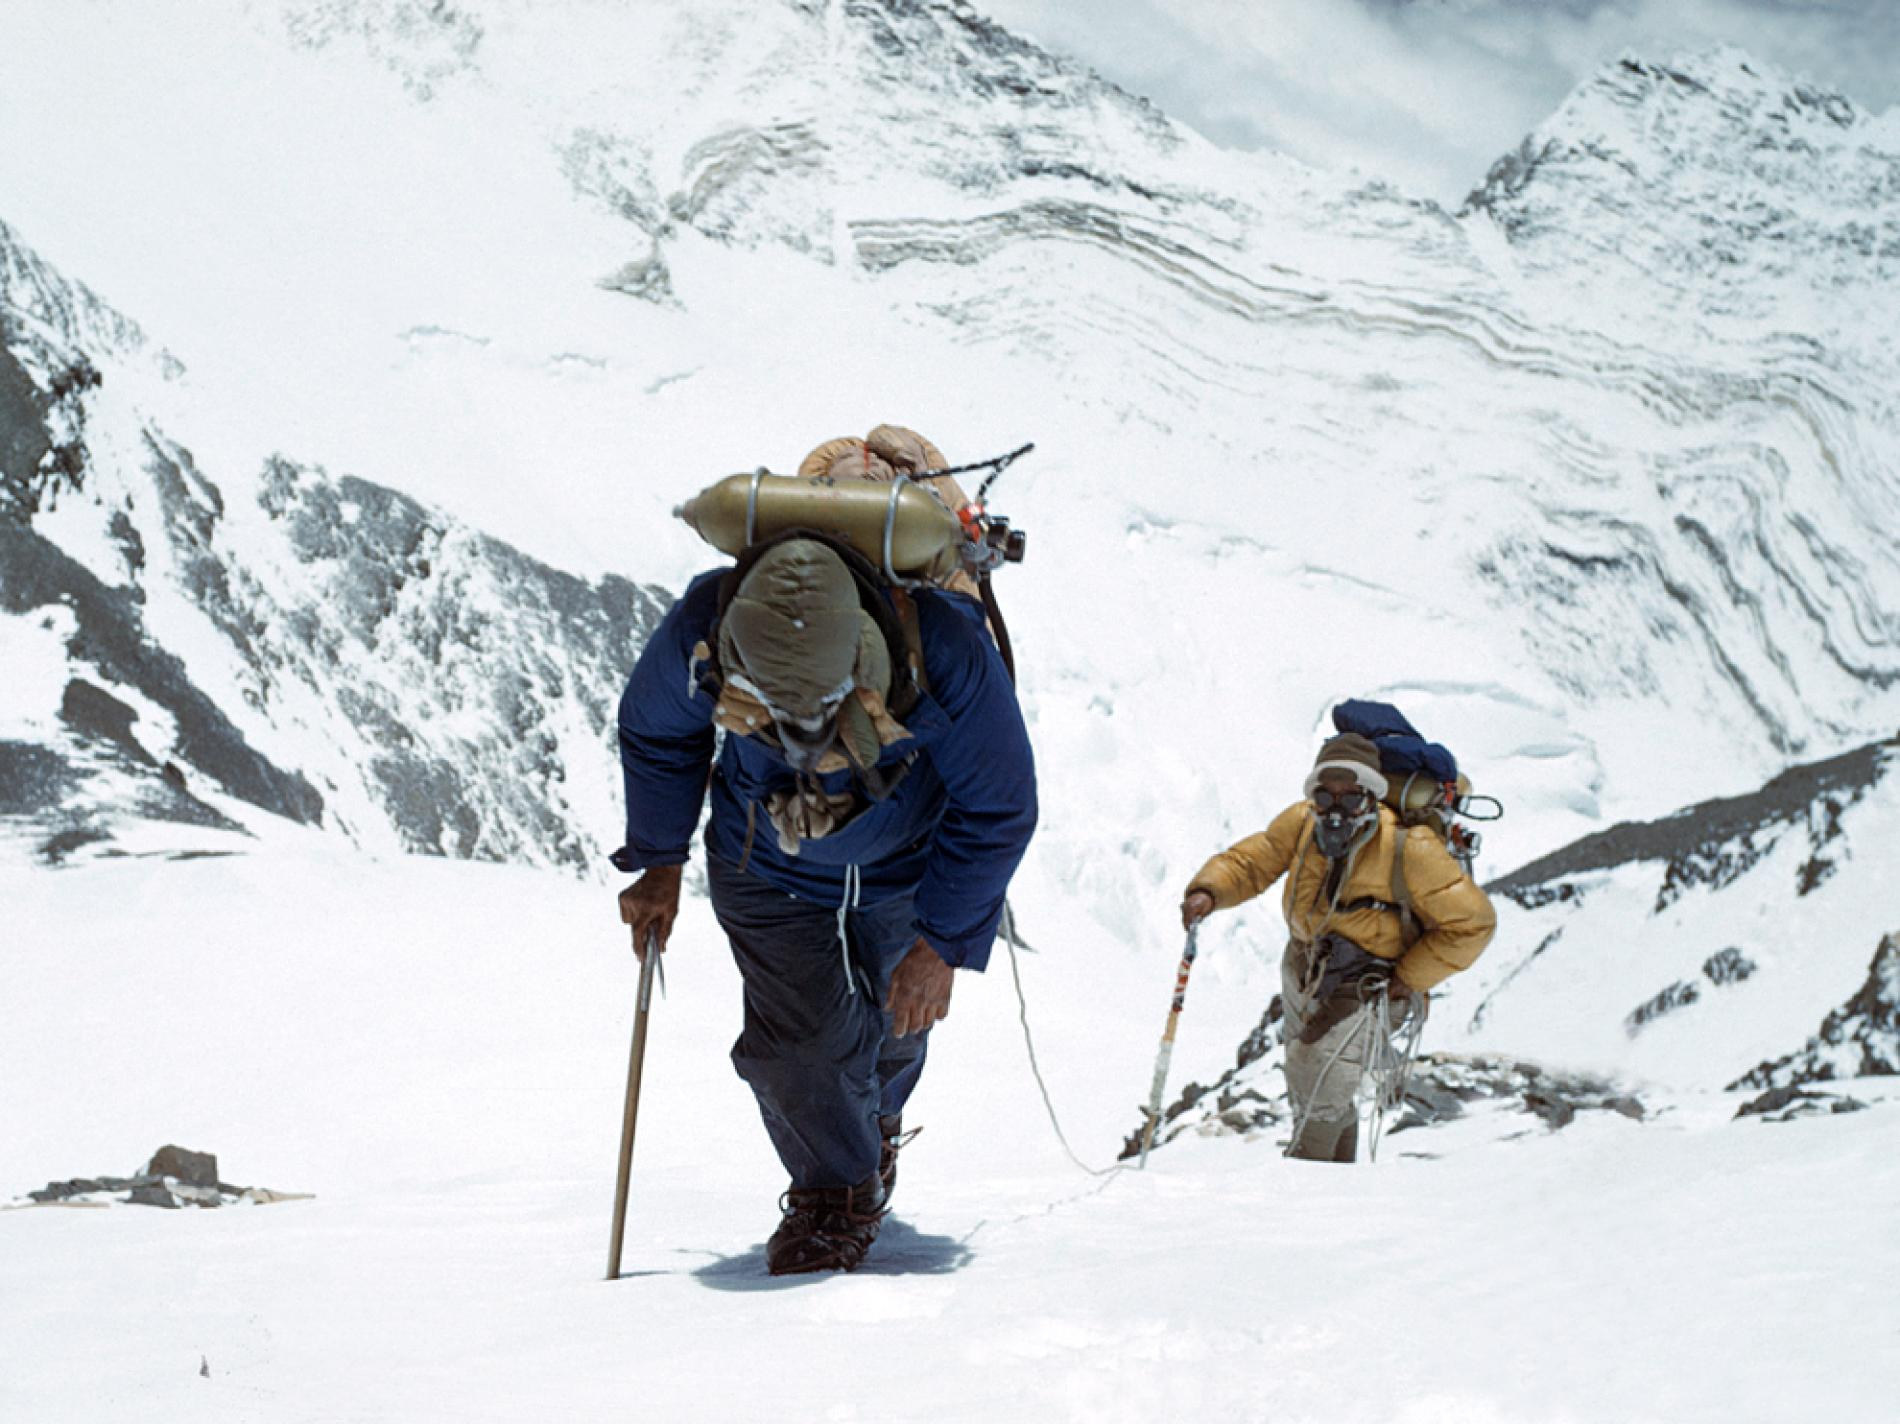 Edmund Hillary & Tenzing Norgay summiting Mount Everest for the first time.